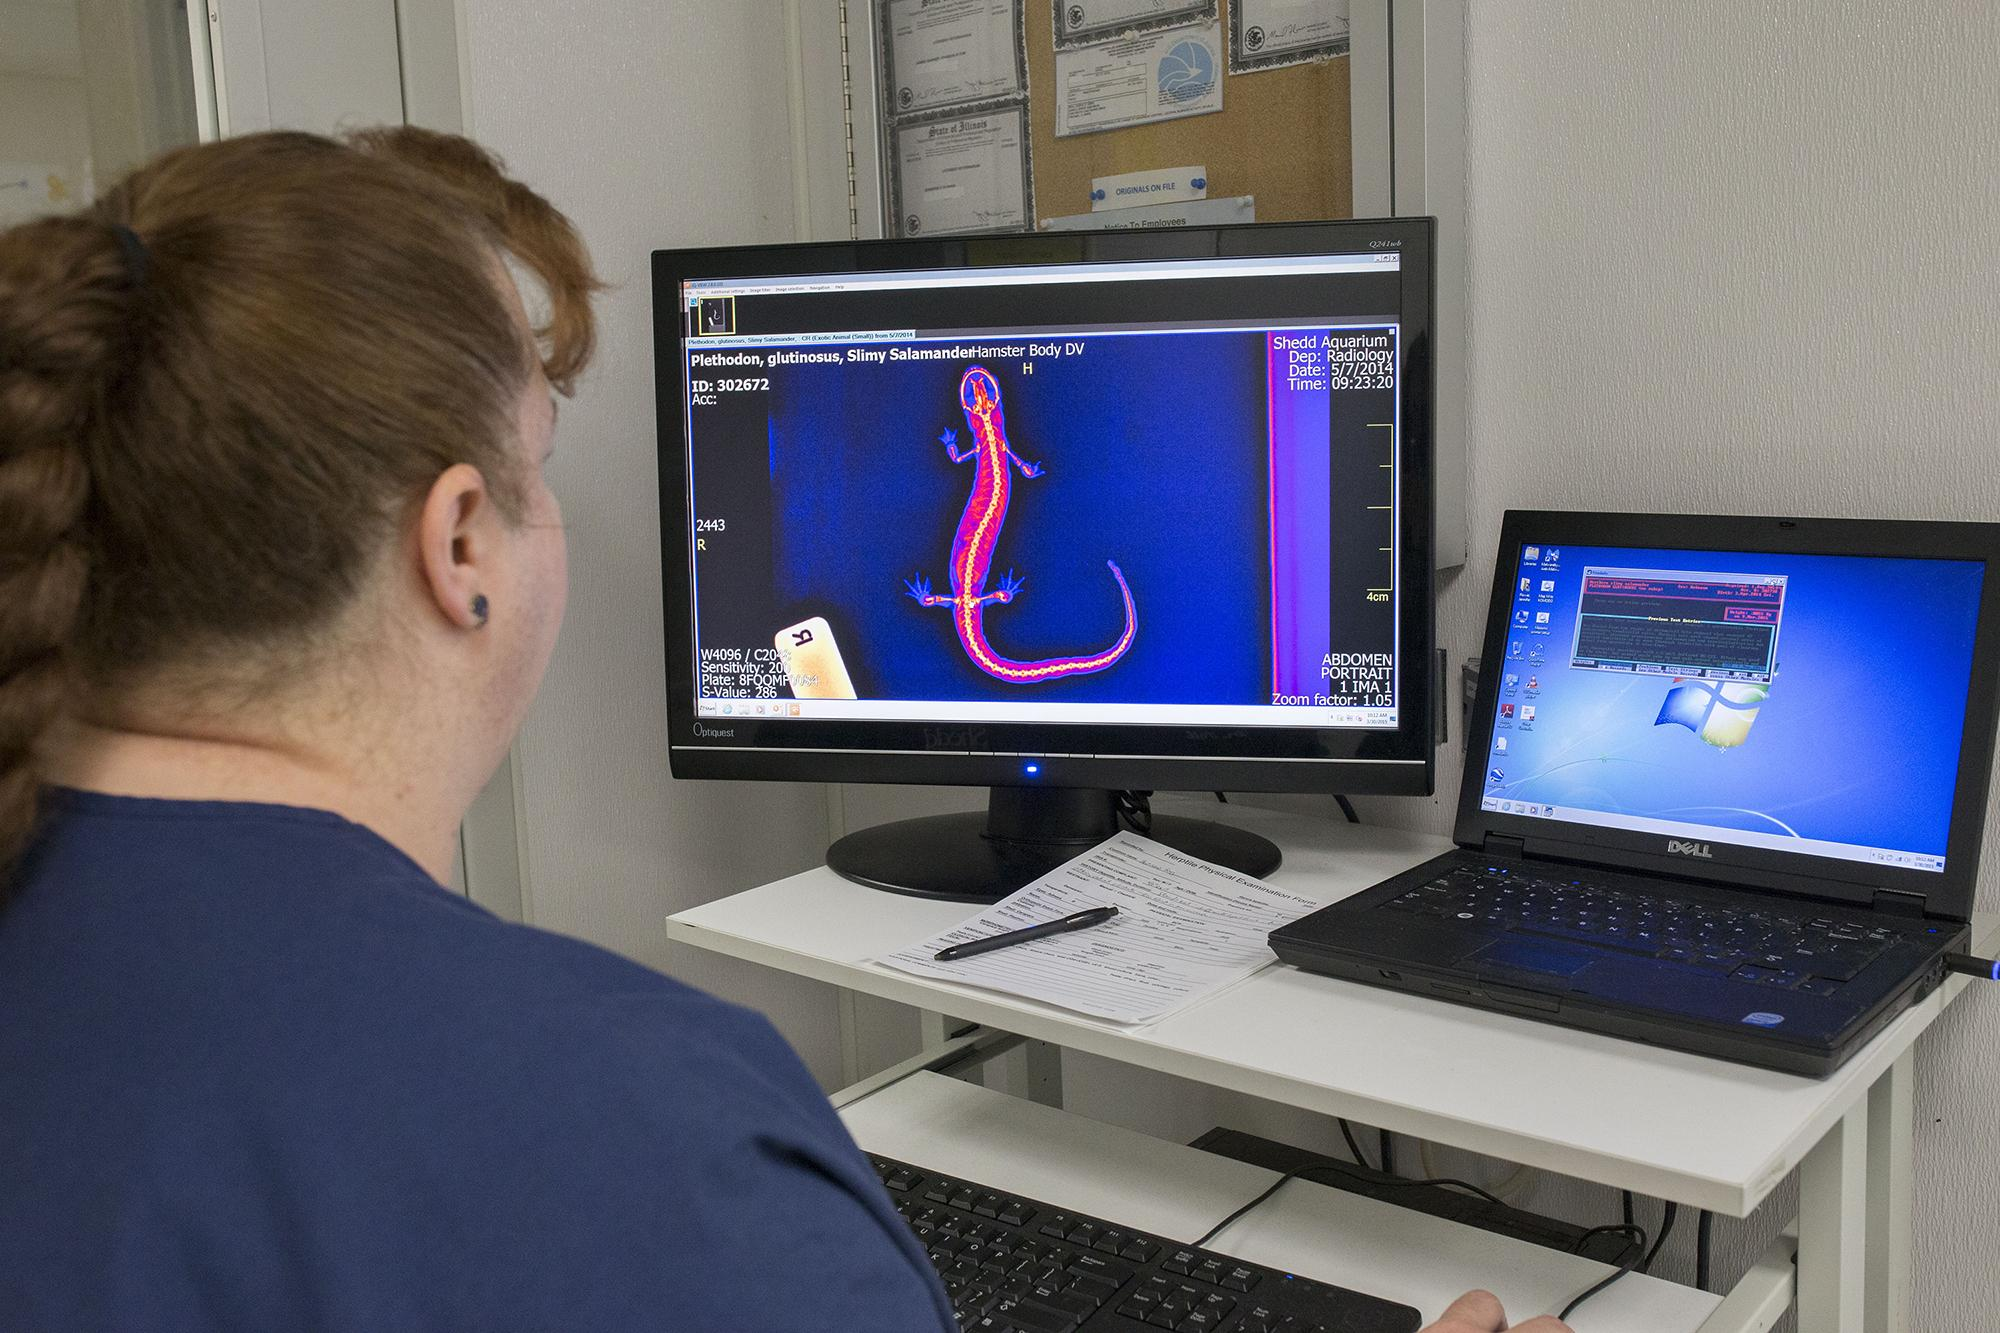 A staff member analyzes X-ray images of a salamander at Shedd Aquarium. (Courtesy Shedd Aquarium)